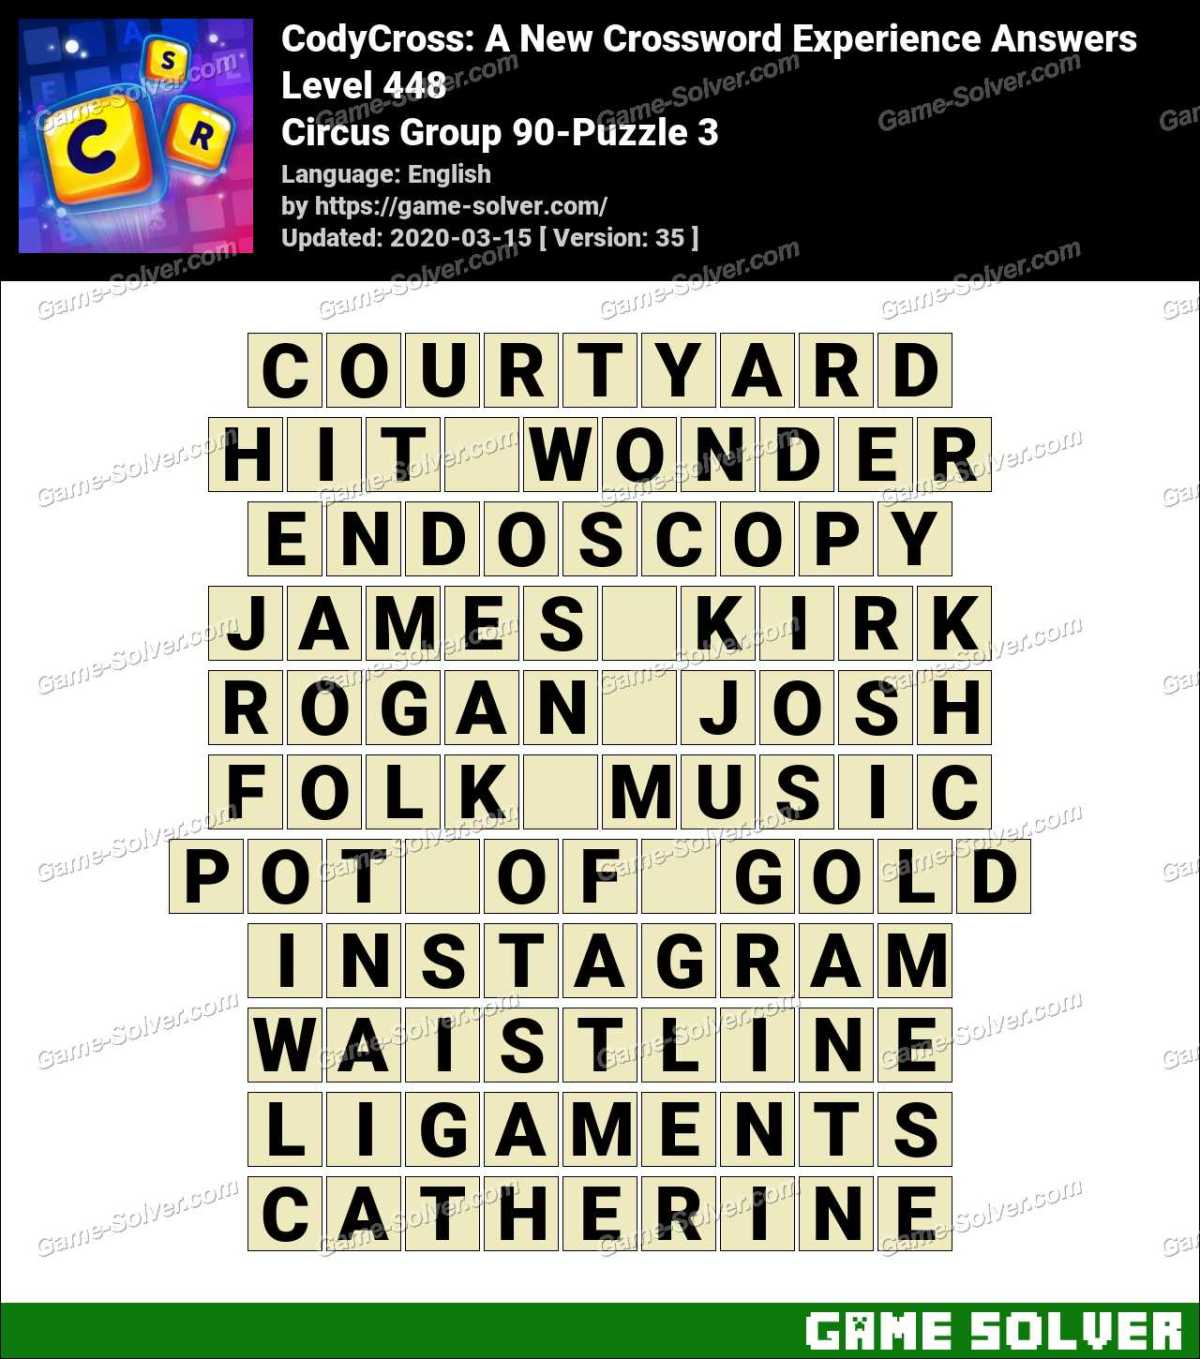 CodyCross Circus Group 90-Puzzle 3 Answers